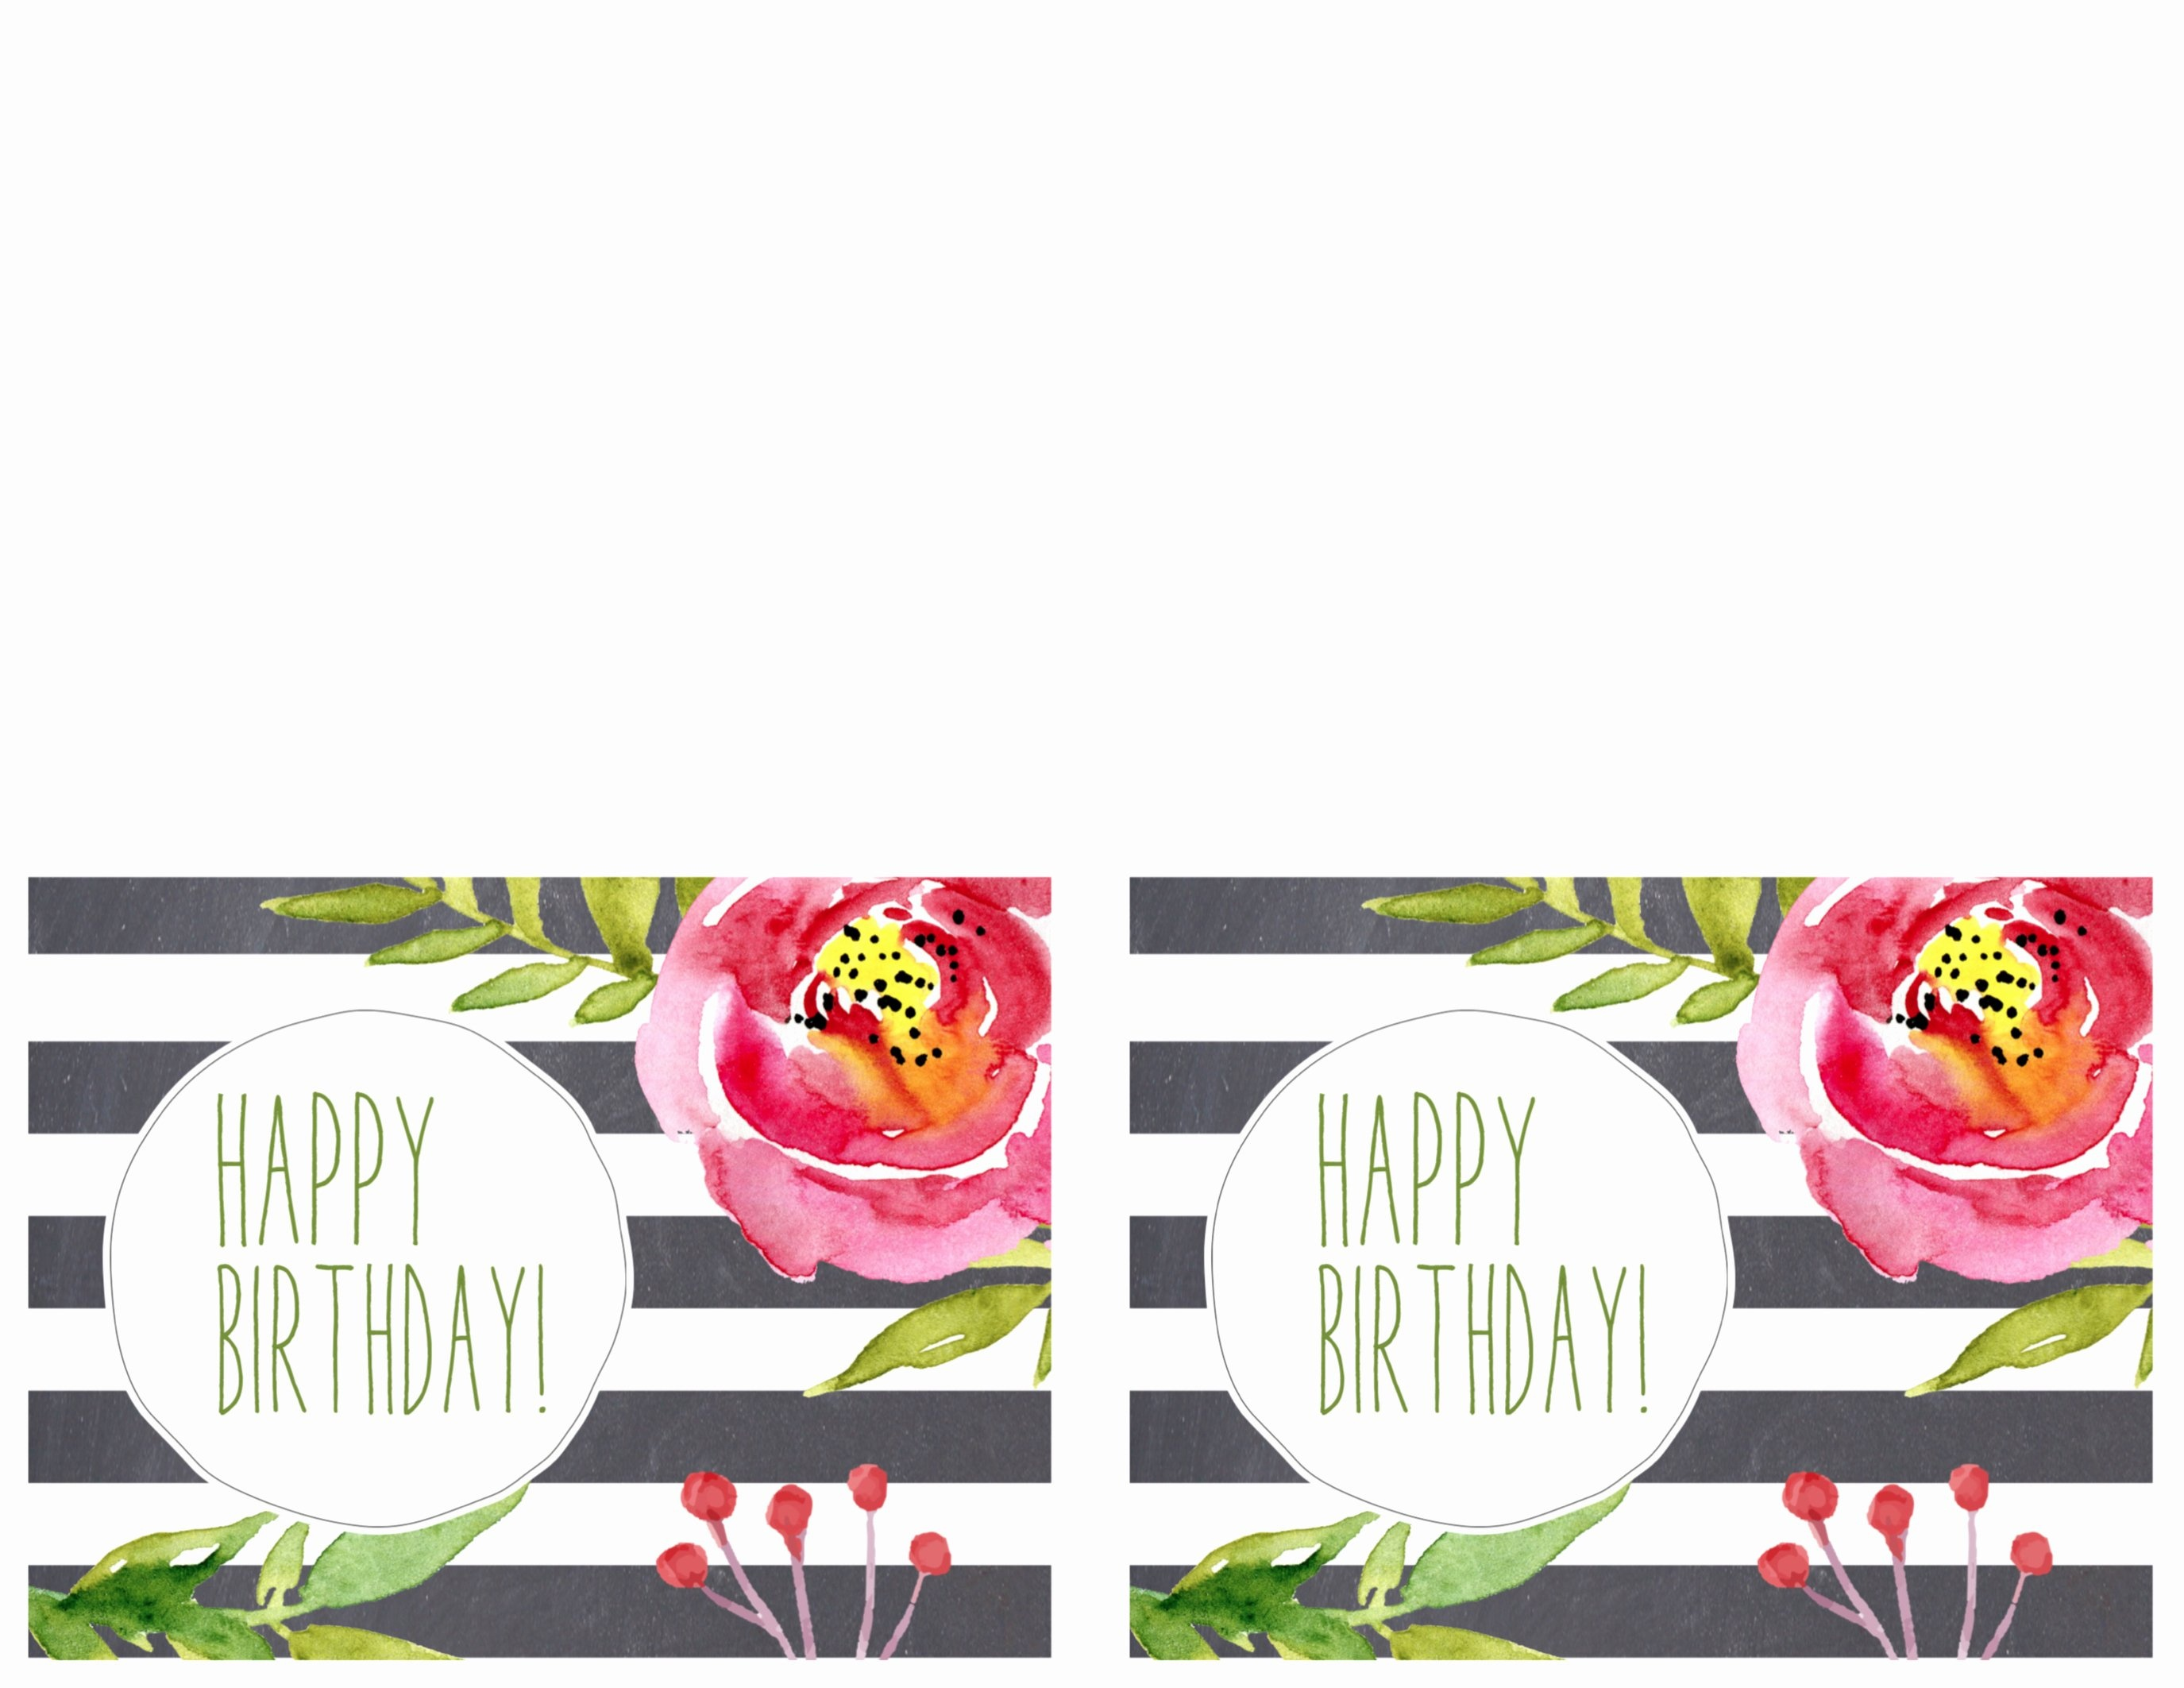 First Birthday Invitations: Juni 1983 - Blue Mountain Cards Free Printable